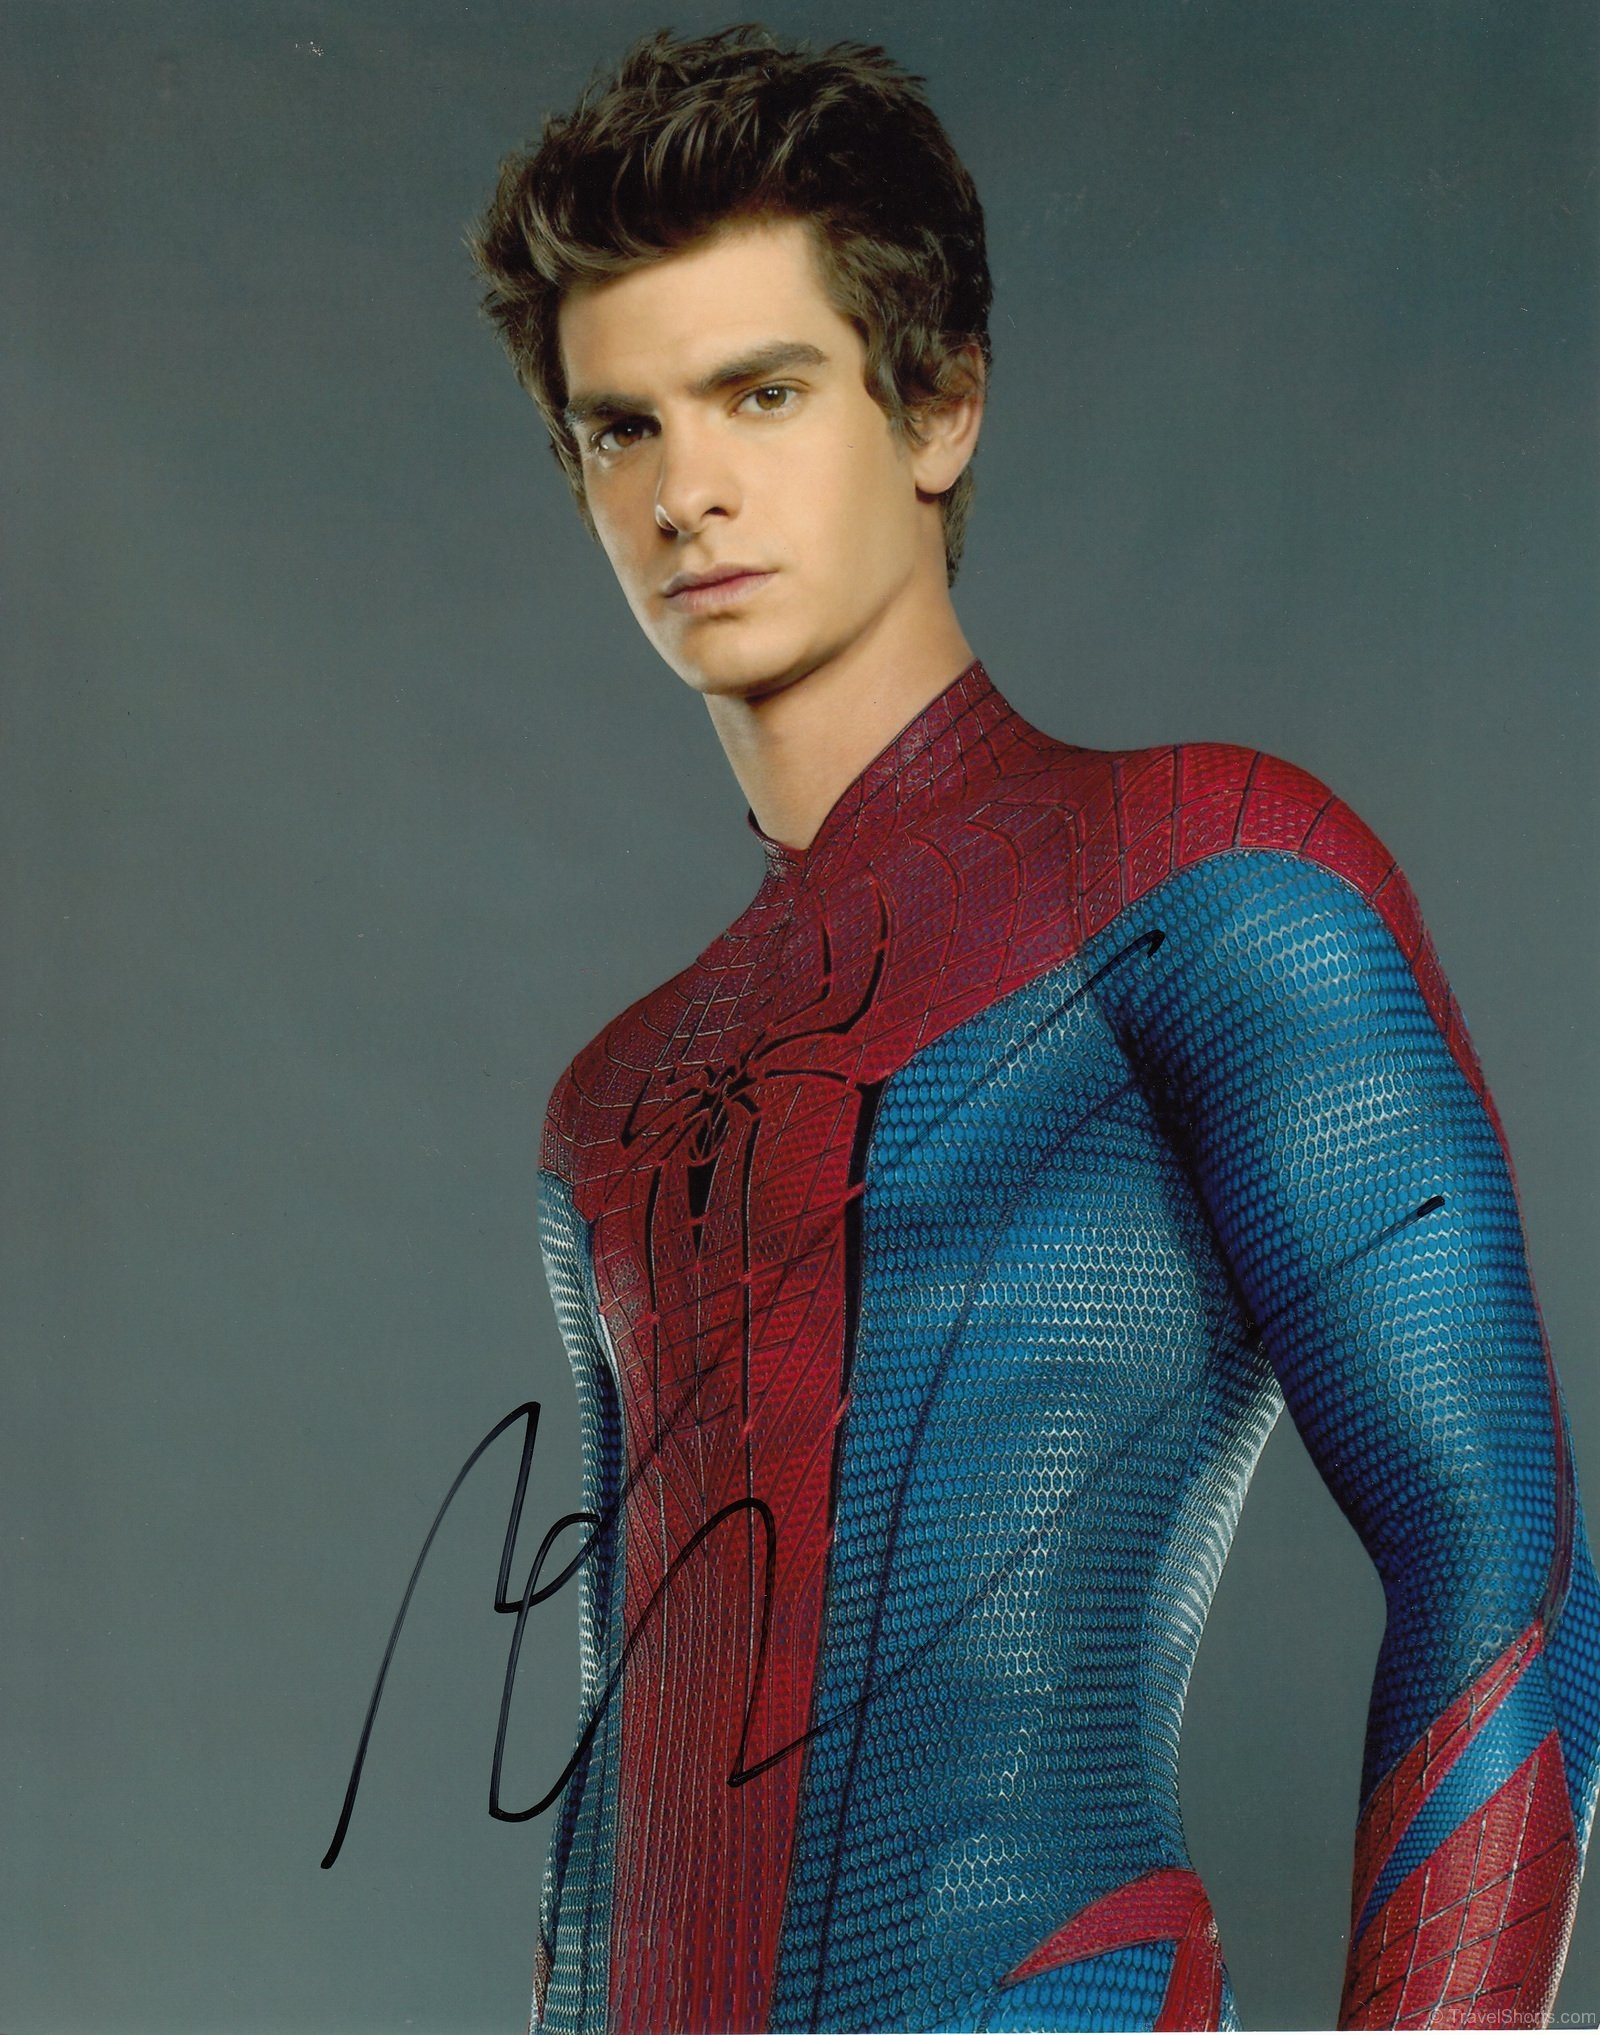 Andrew-Garfield-Signed-Photograph